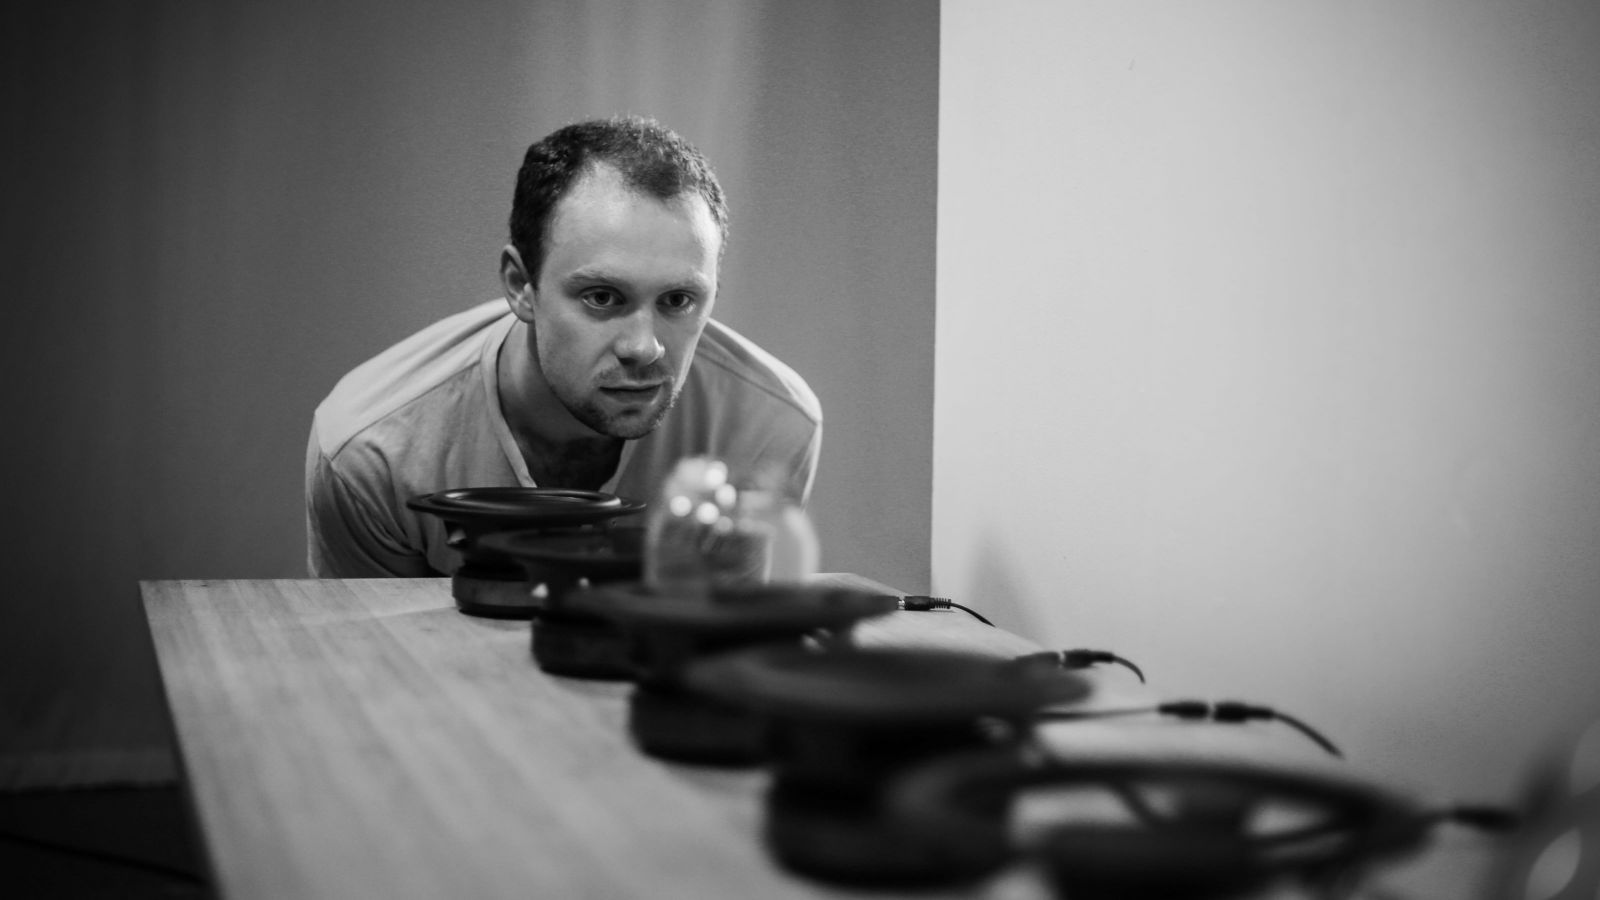 A man leans down to a table with round black indistinguishable obects lined up. The photo is in black and white.